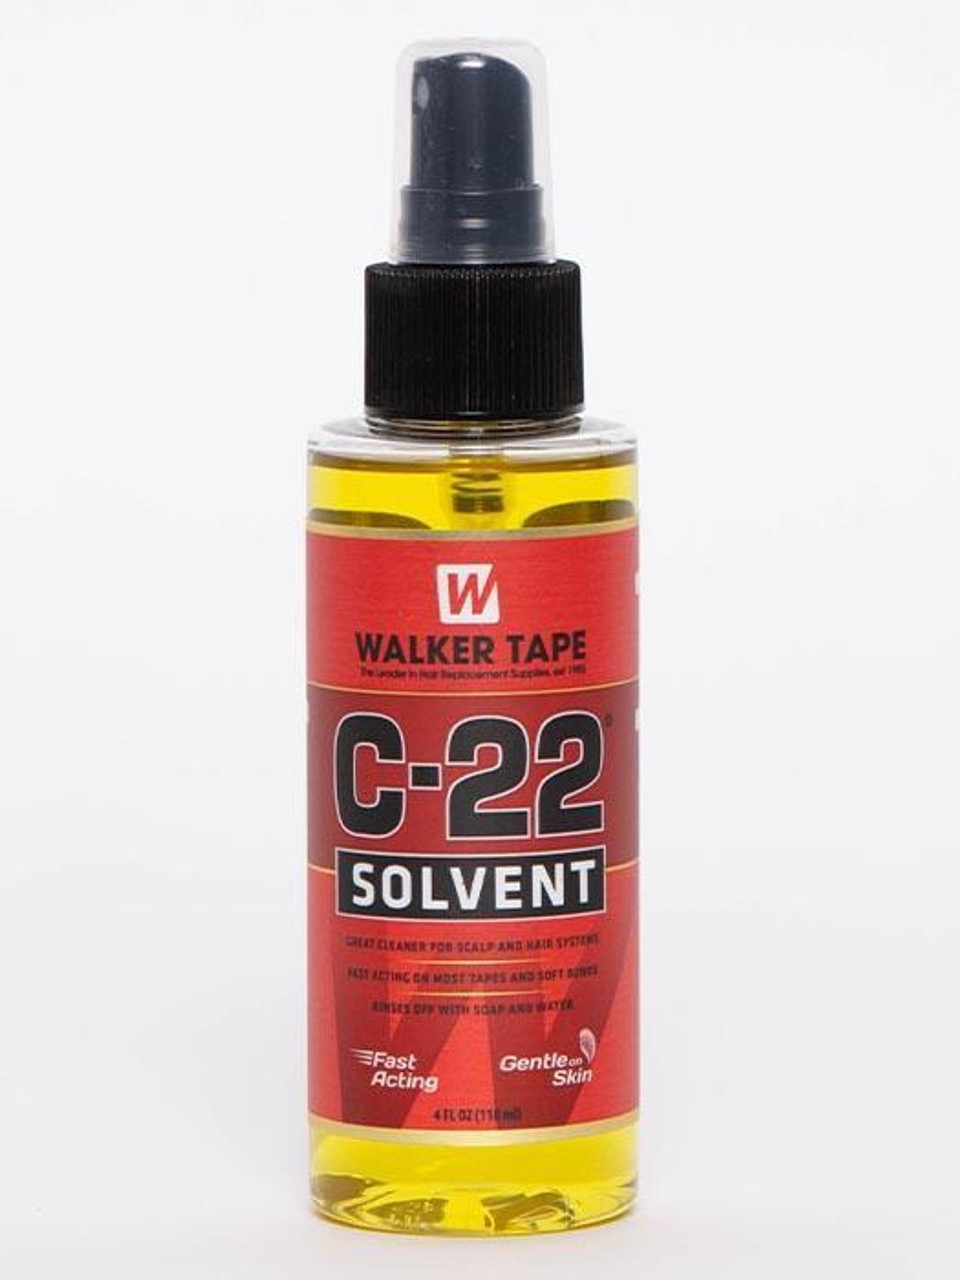 C-22 solvent for hair extension removal